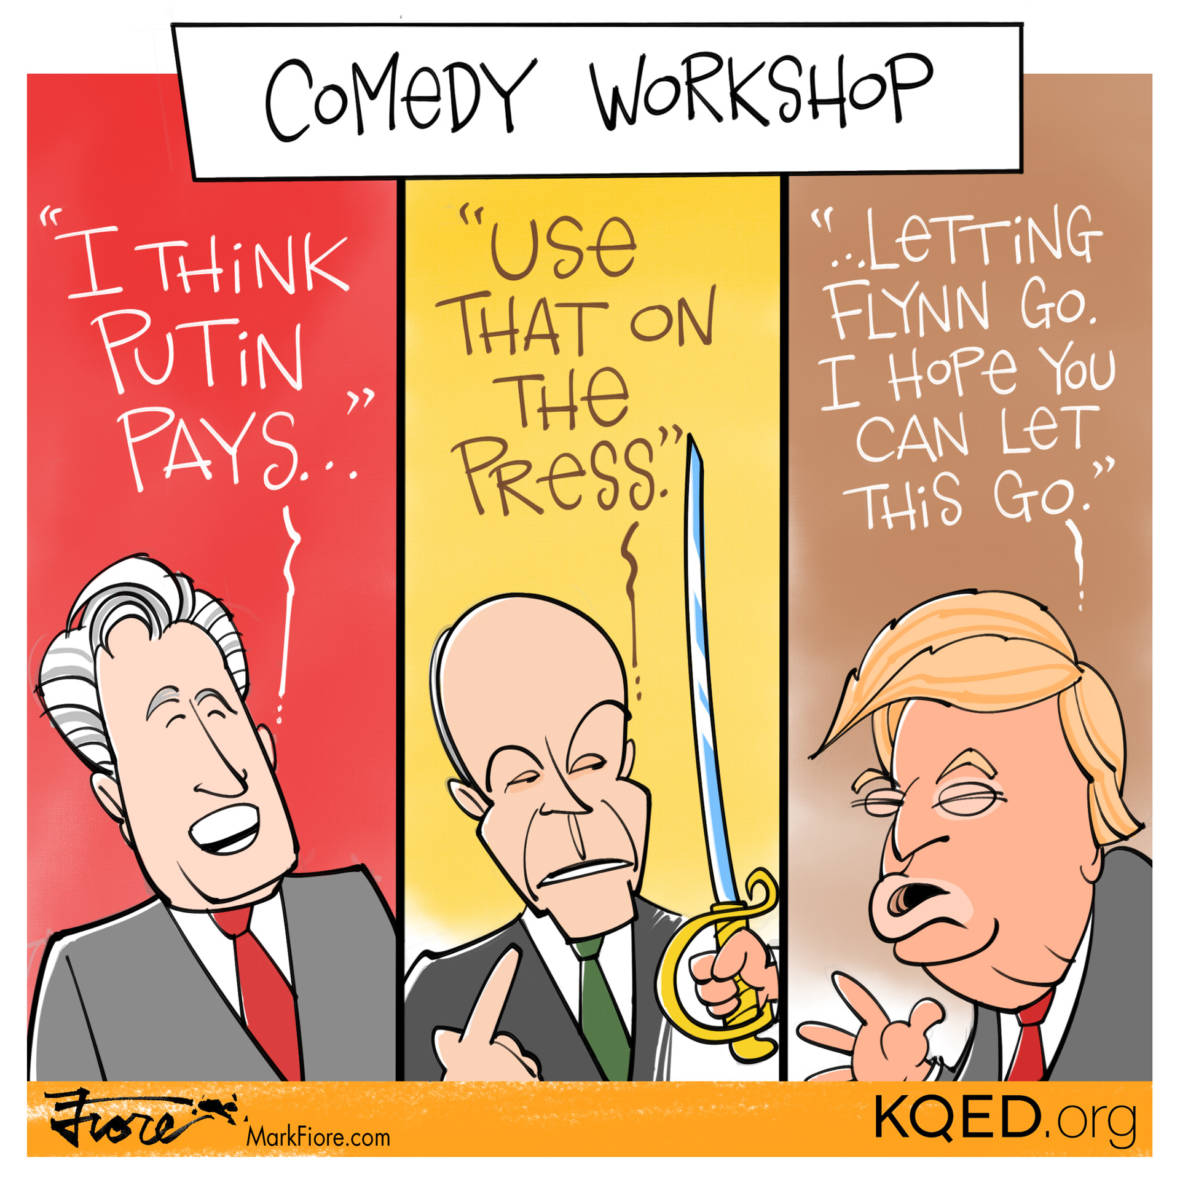 Comedy Workshop by Mark Fiore